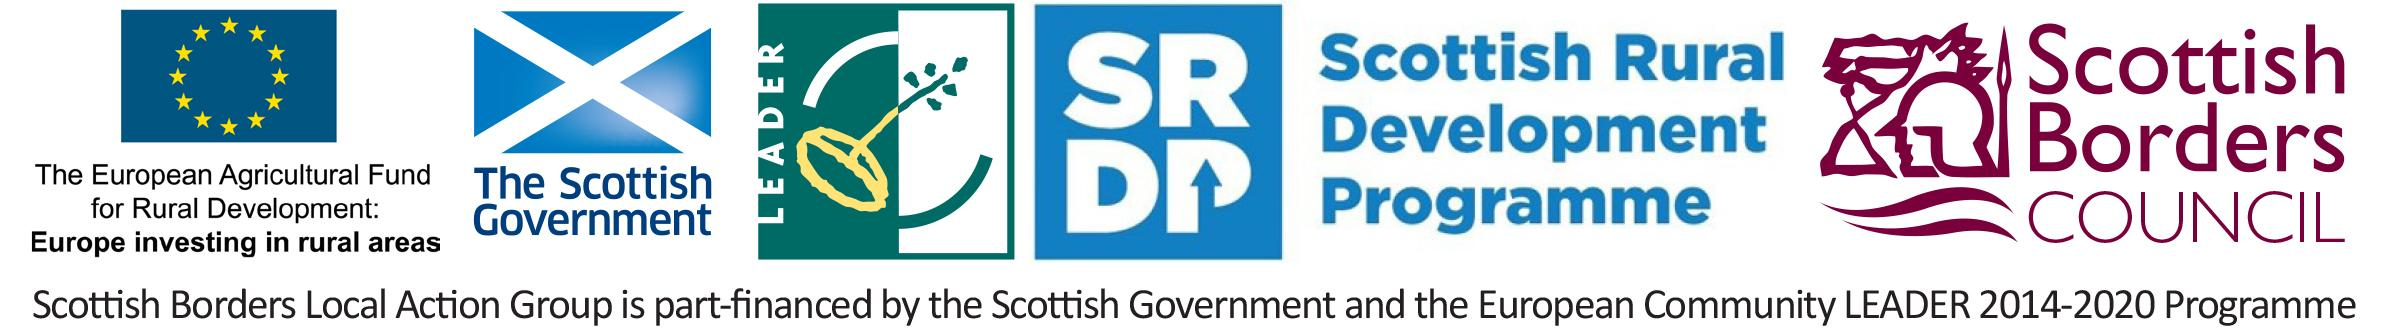 LEADER programme logo including The European Agricultural Fund for Rural Development, Scottish Government, LEADER, Scottish Rural Development Programme and ourselves